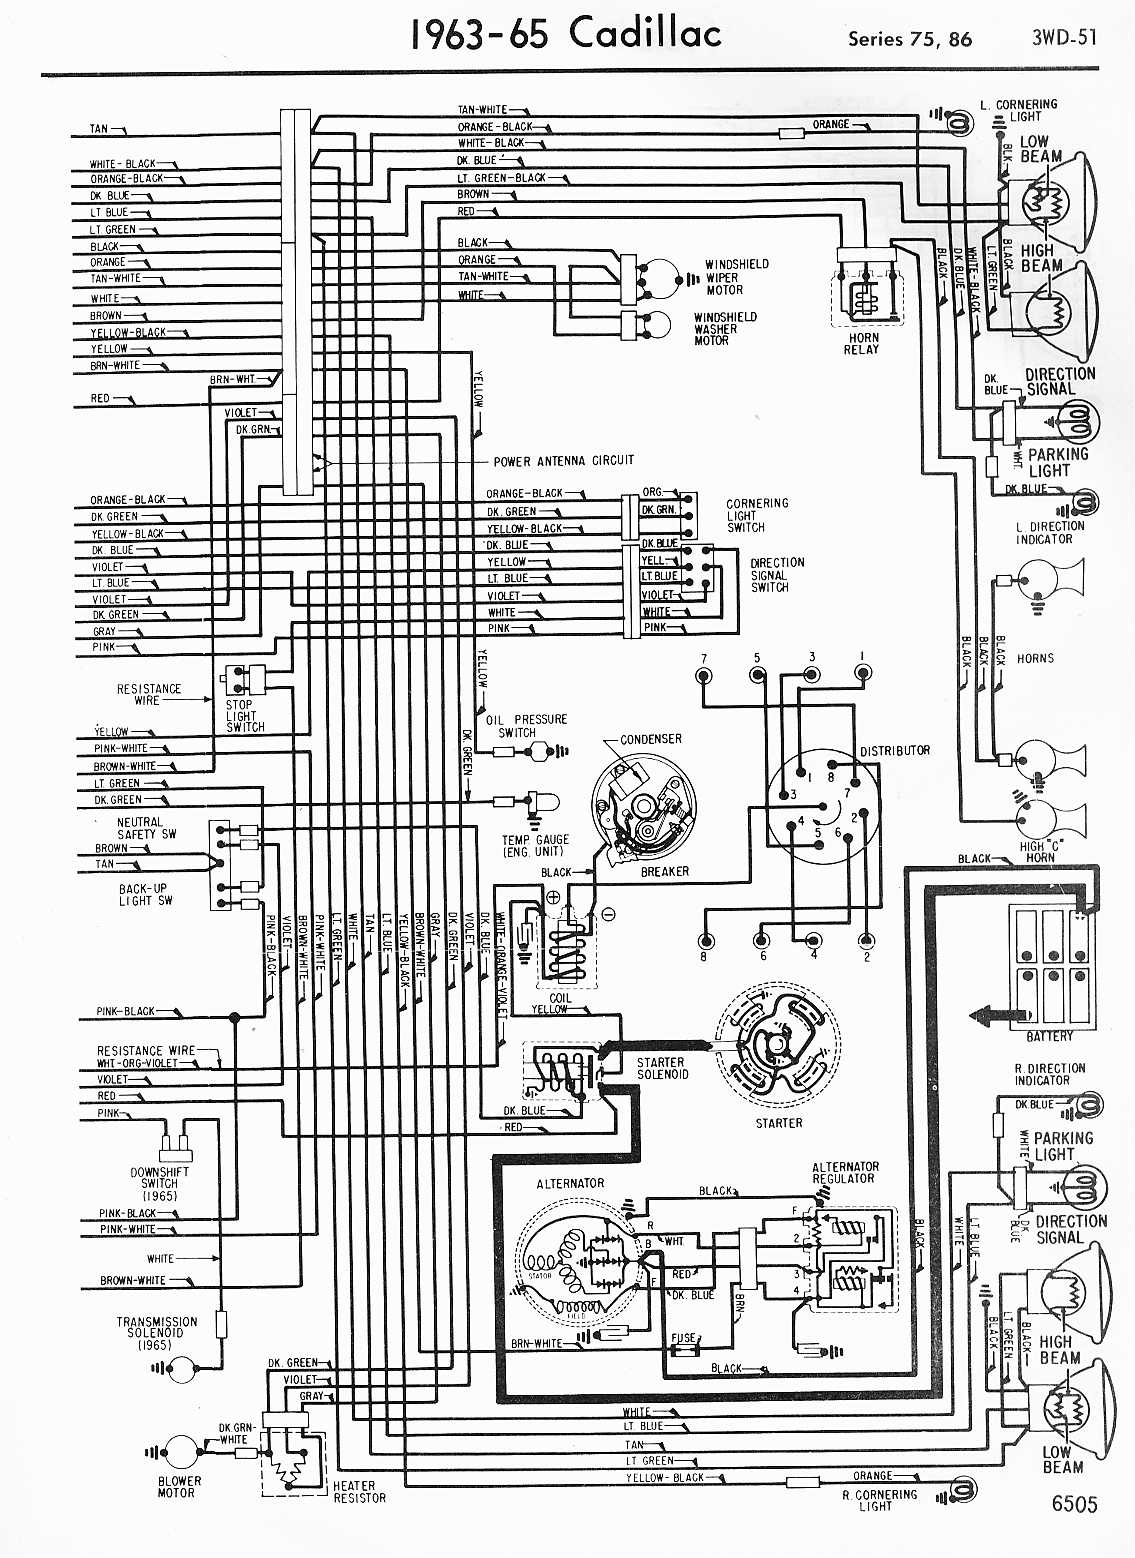 1964 Cadillac Ac Wiring Diagram Data 1 2 Ford Mustang Diagrams 1957 1965 1953 Truck